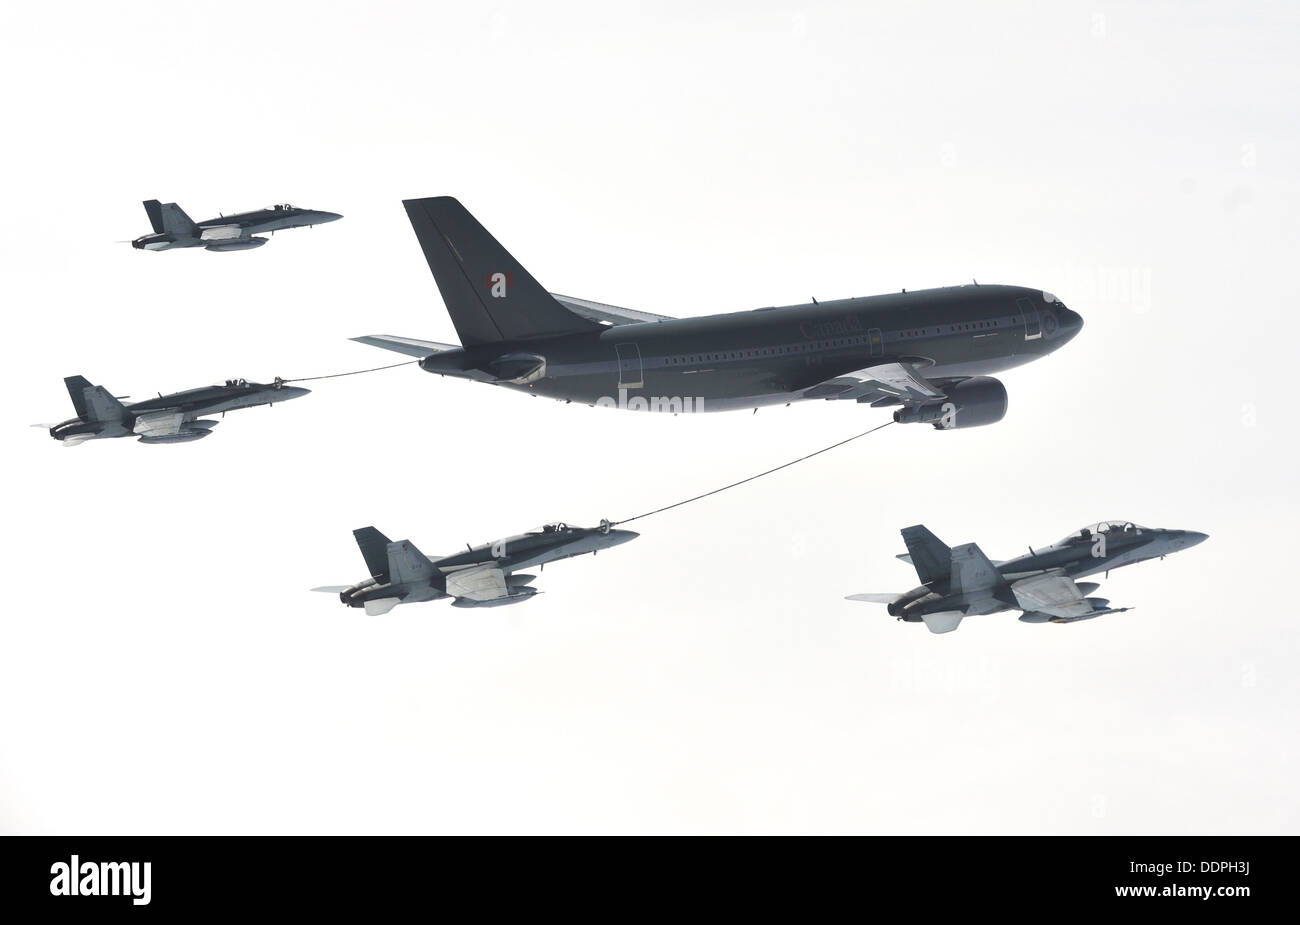 A CC-150 Polaris Airbus from 437 Squadron in Trenton provides air-to-air refueling to CF-18 Hornet fighter aircraft Stock Photo